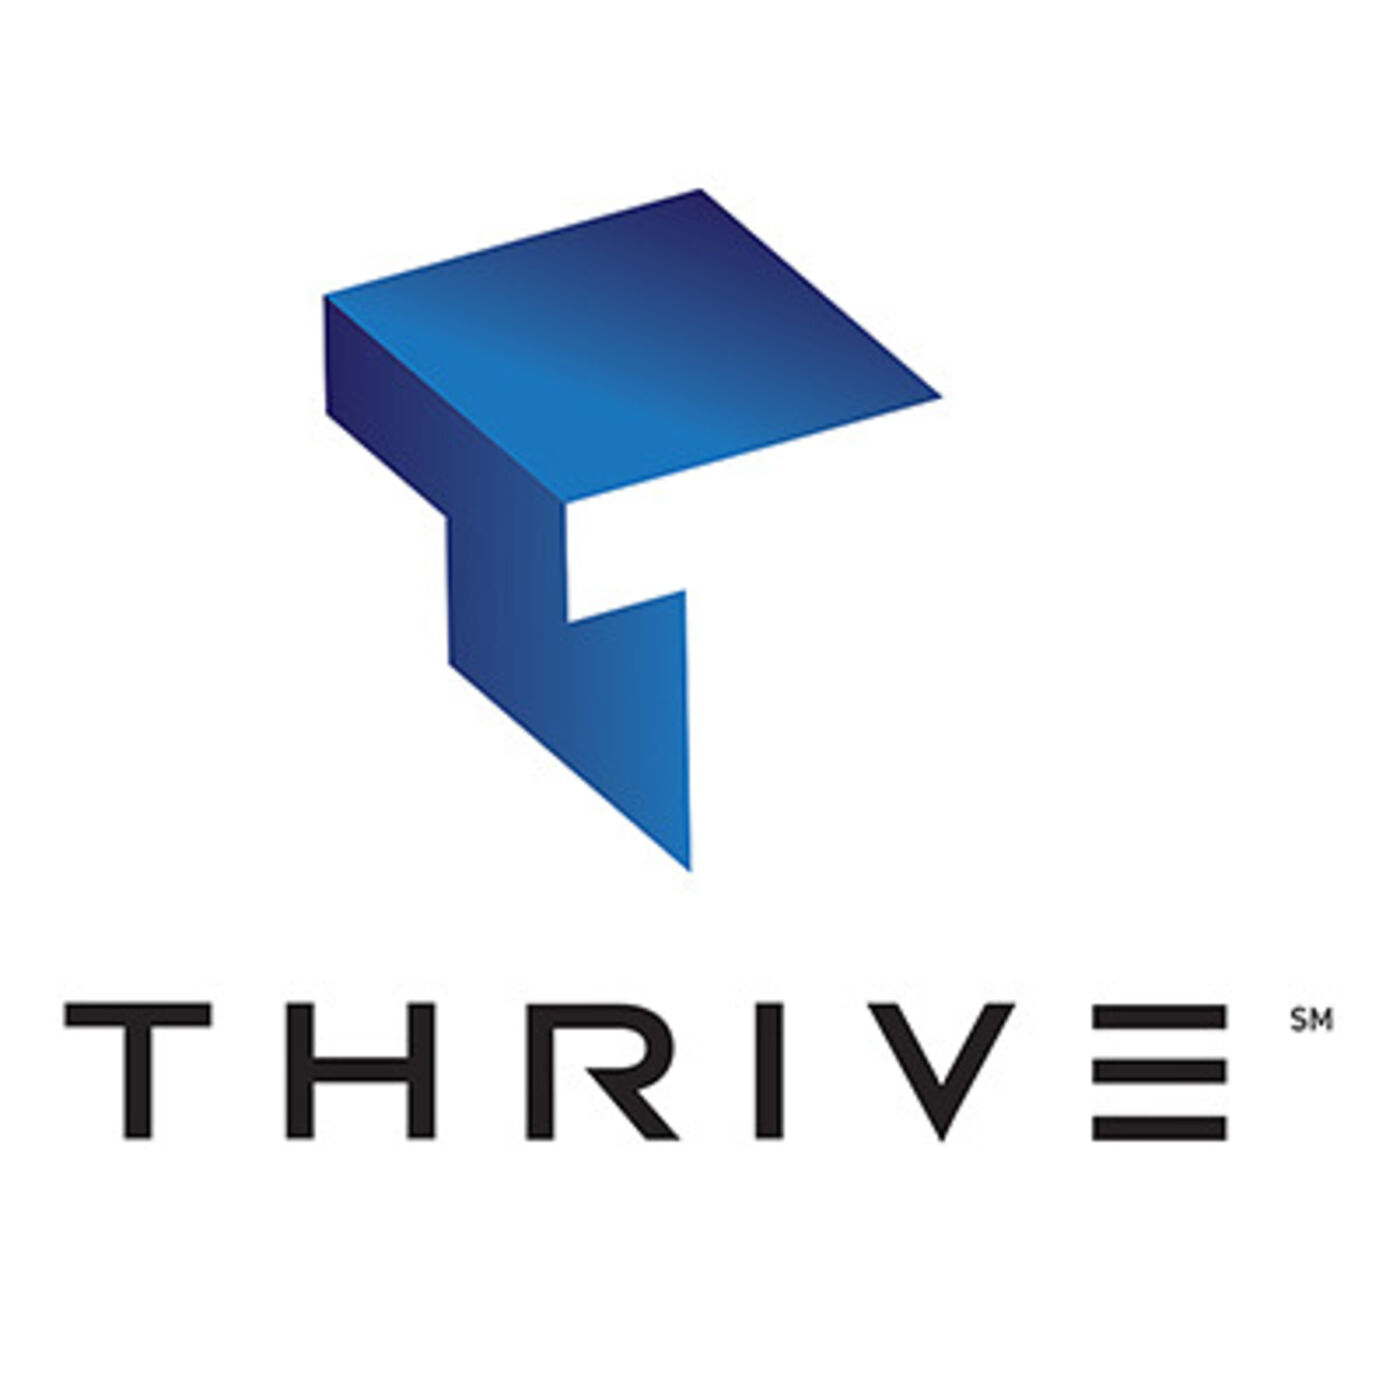 Thrive Webinar - Cyber Security: 2020 Lessons Learned and 2021 Look Forward